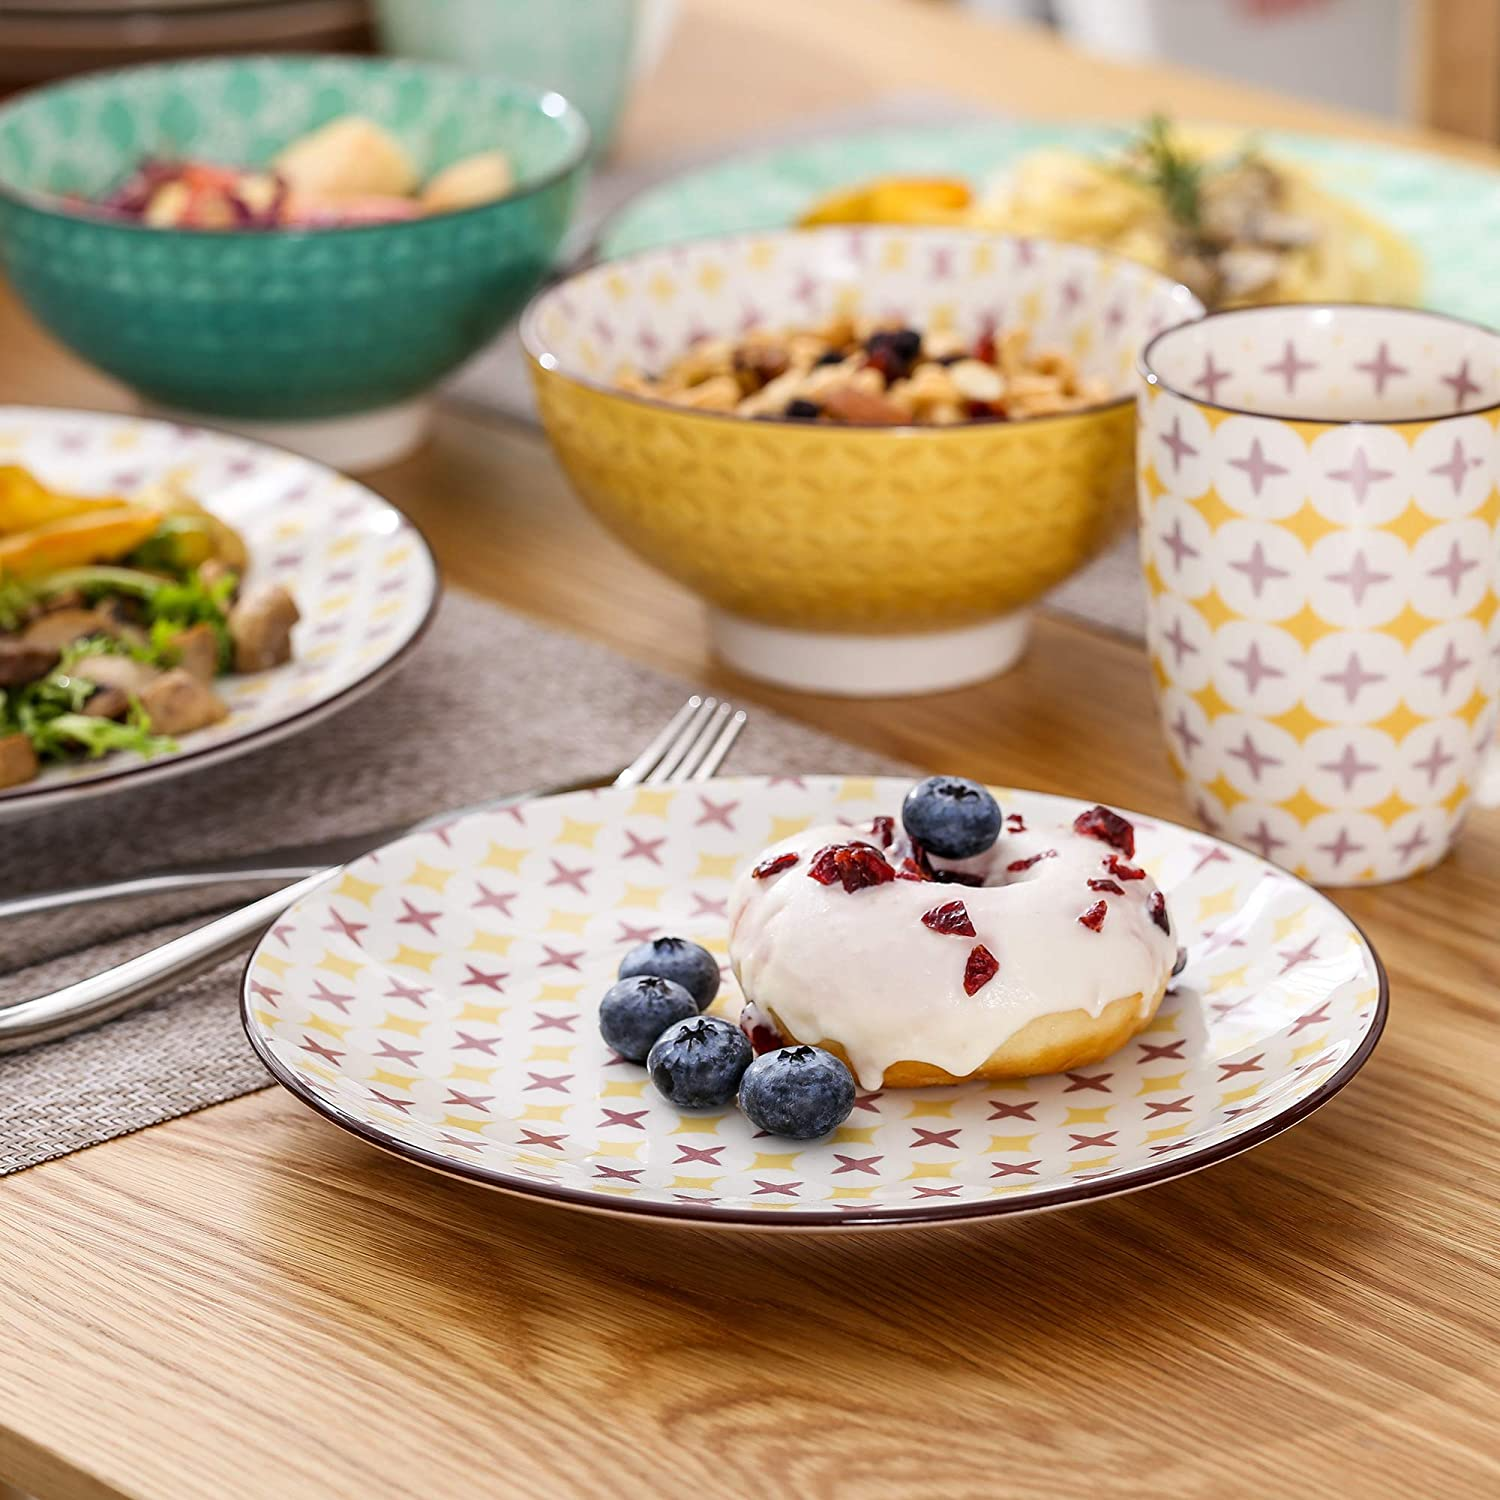 Service for 4 Persons Vancasso Tulip Dinnerware Set 16 Pieces Porcelain Dinner Set Multi-Colour Mandala with 10.6 inch Dinner Plate 8.5 inch Dessert Plate 6inch Bowl and 13 Ounce Mug